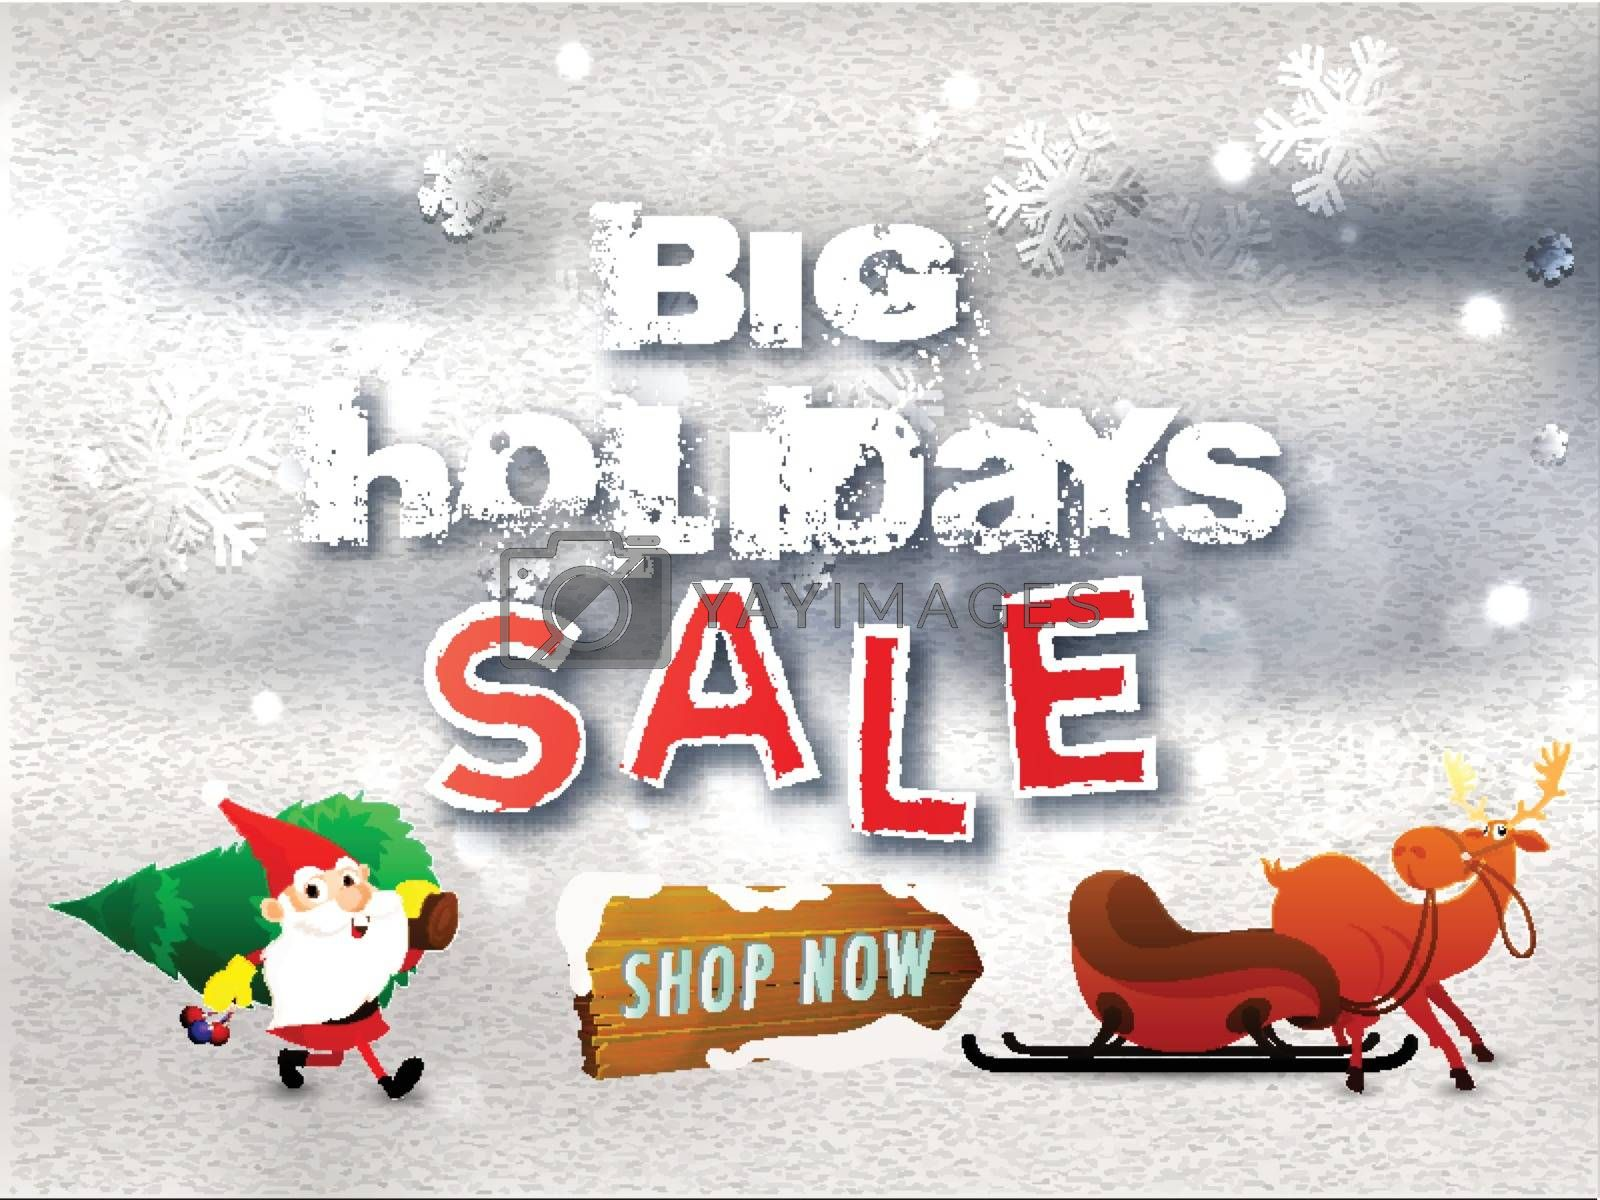 Royalty free image of Beautiful Big Holidays Sale Poster, Promotional, Advertising Ban by aispl